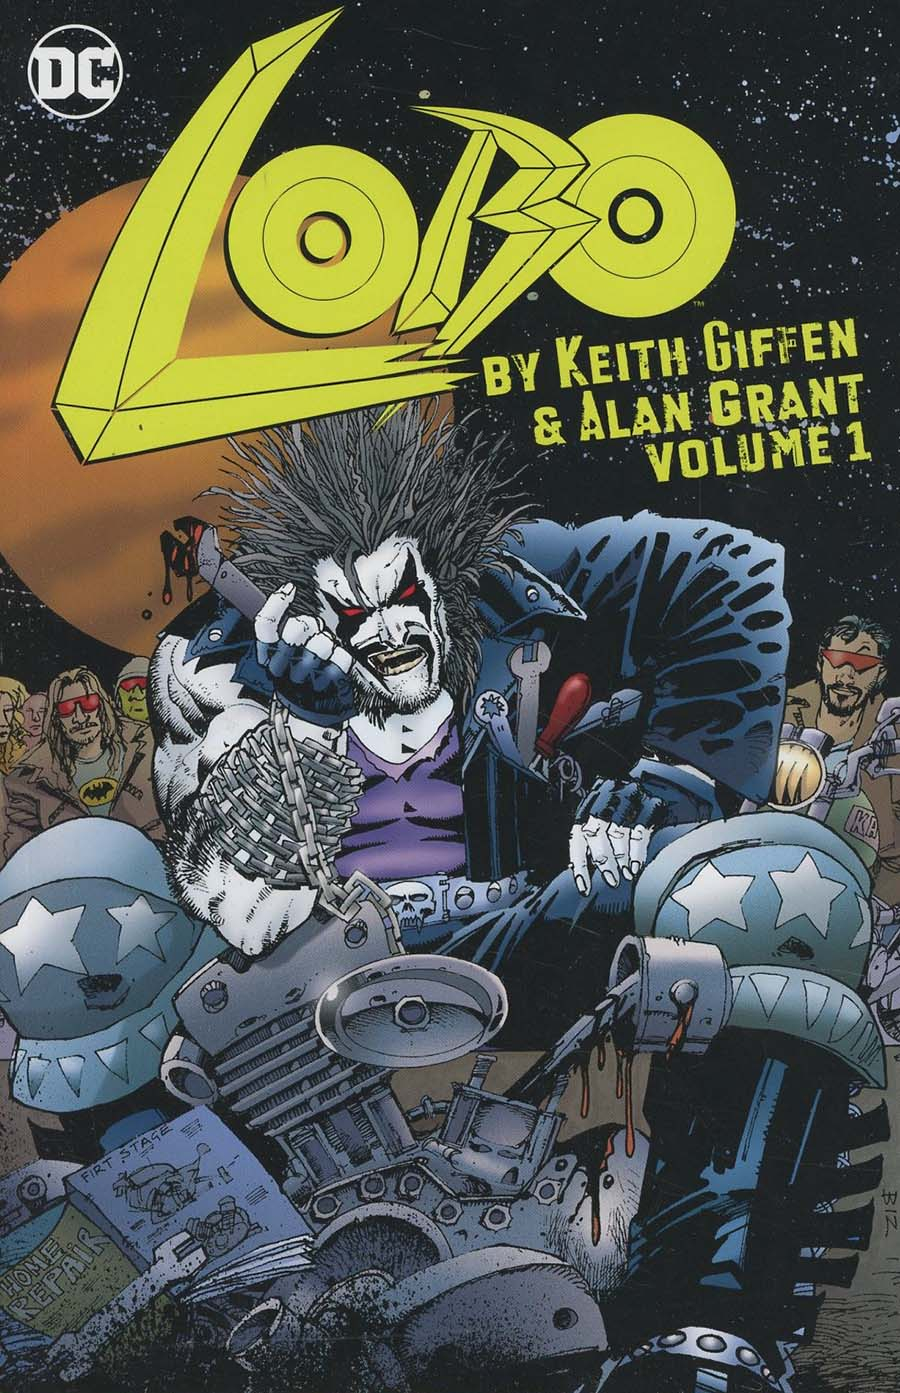 Lobo By Keith Giffen & Alan Grant Vol 1 TP